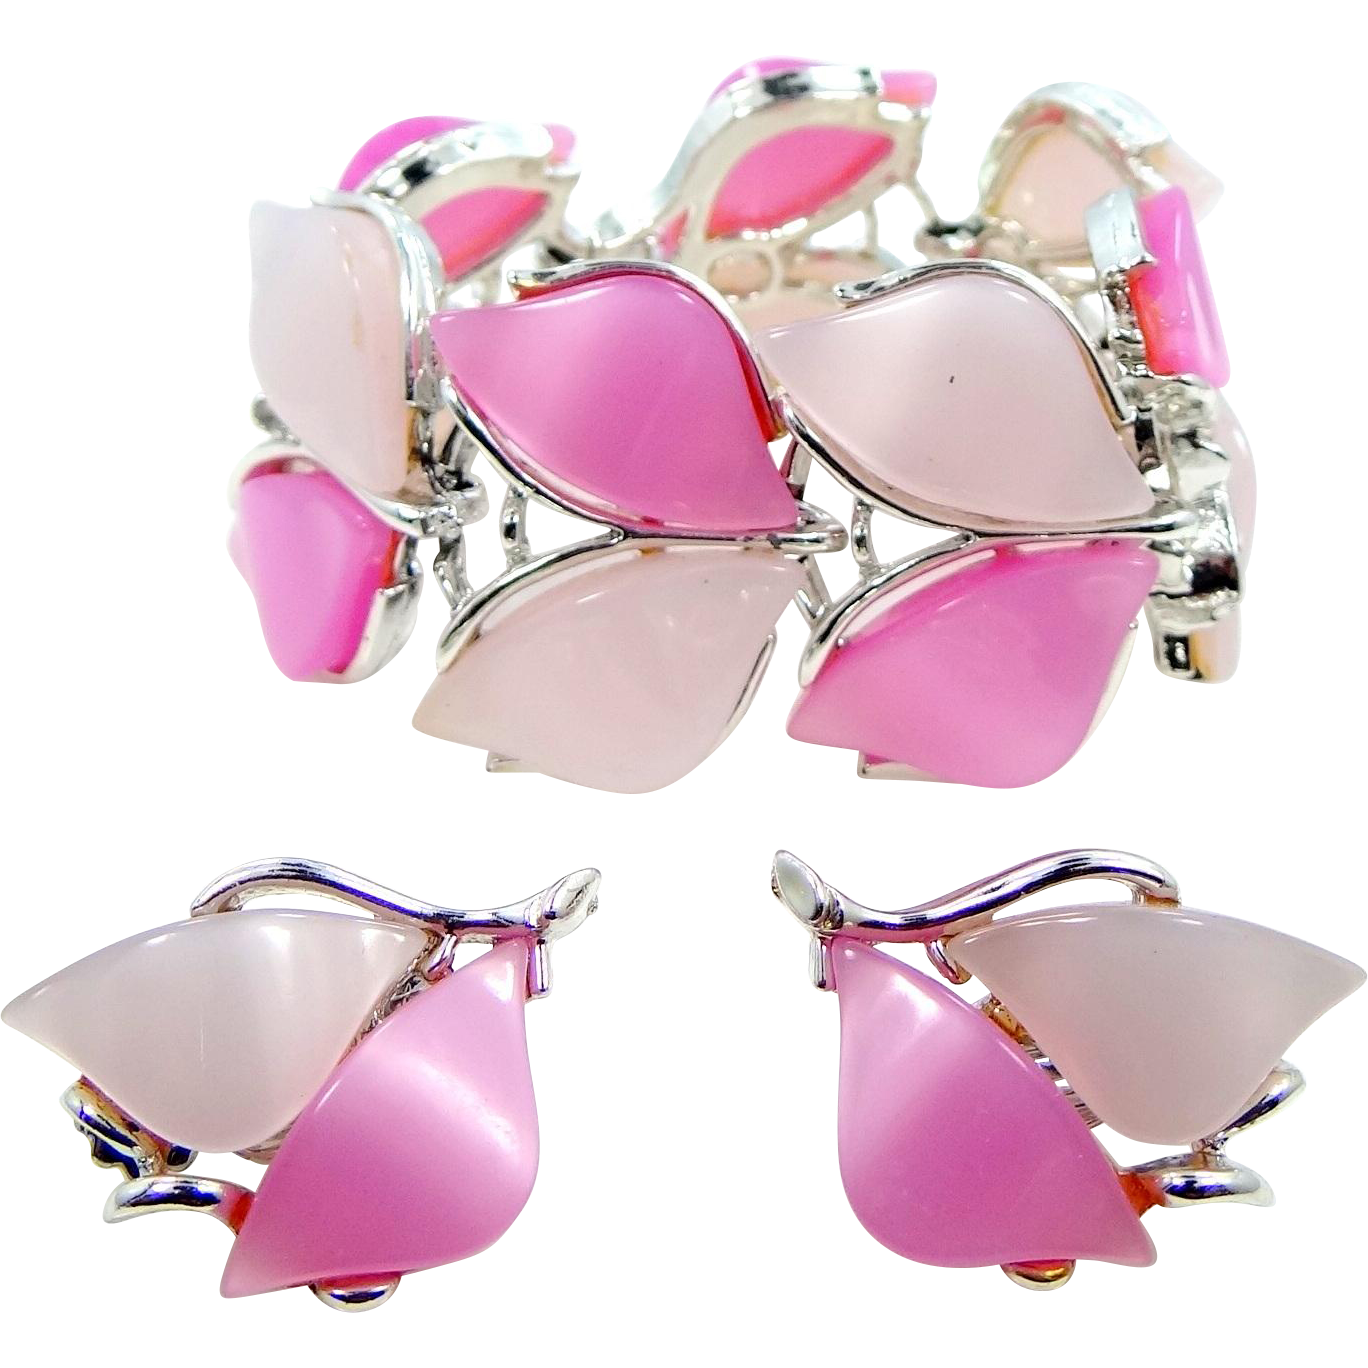 Springtime Colors Pink Thermoplastic 1960s Bracelet and Matching Earrings